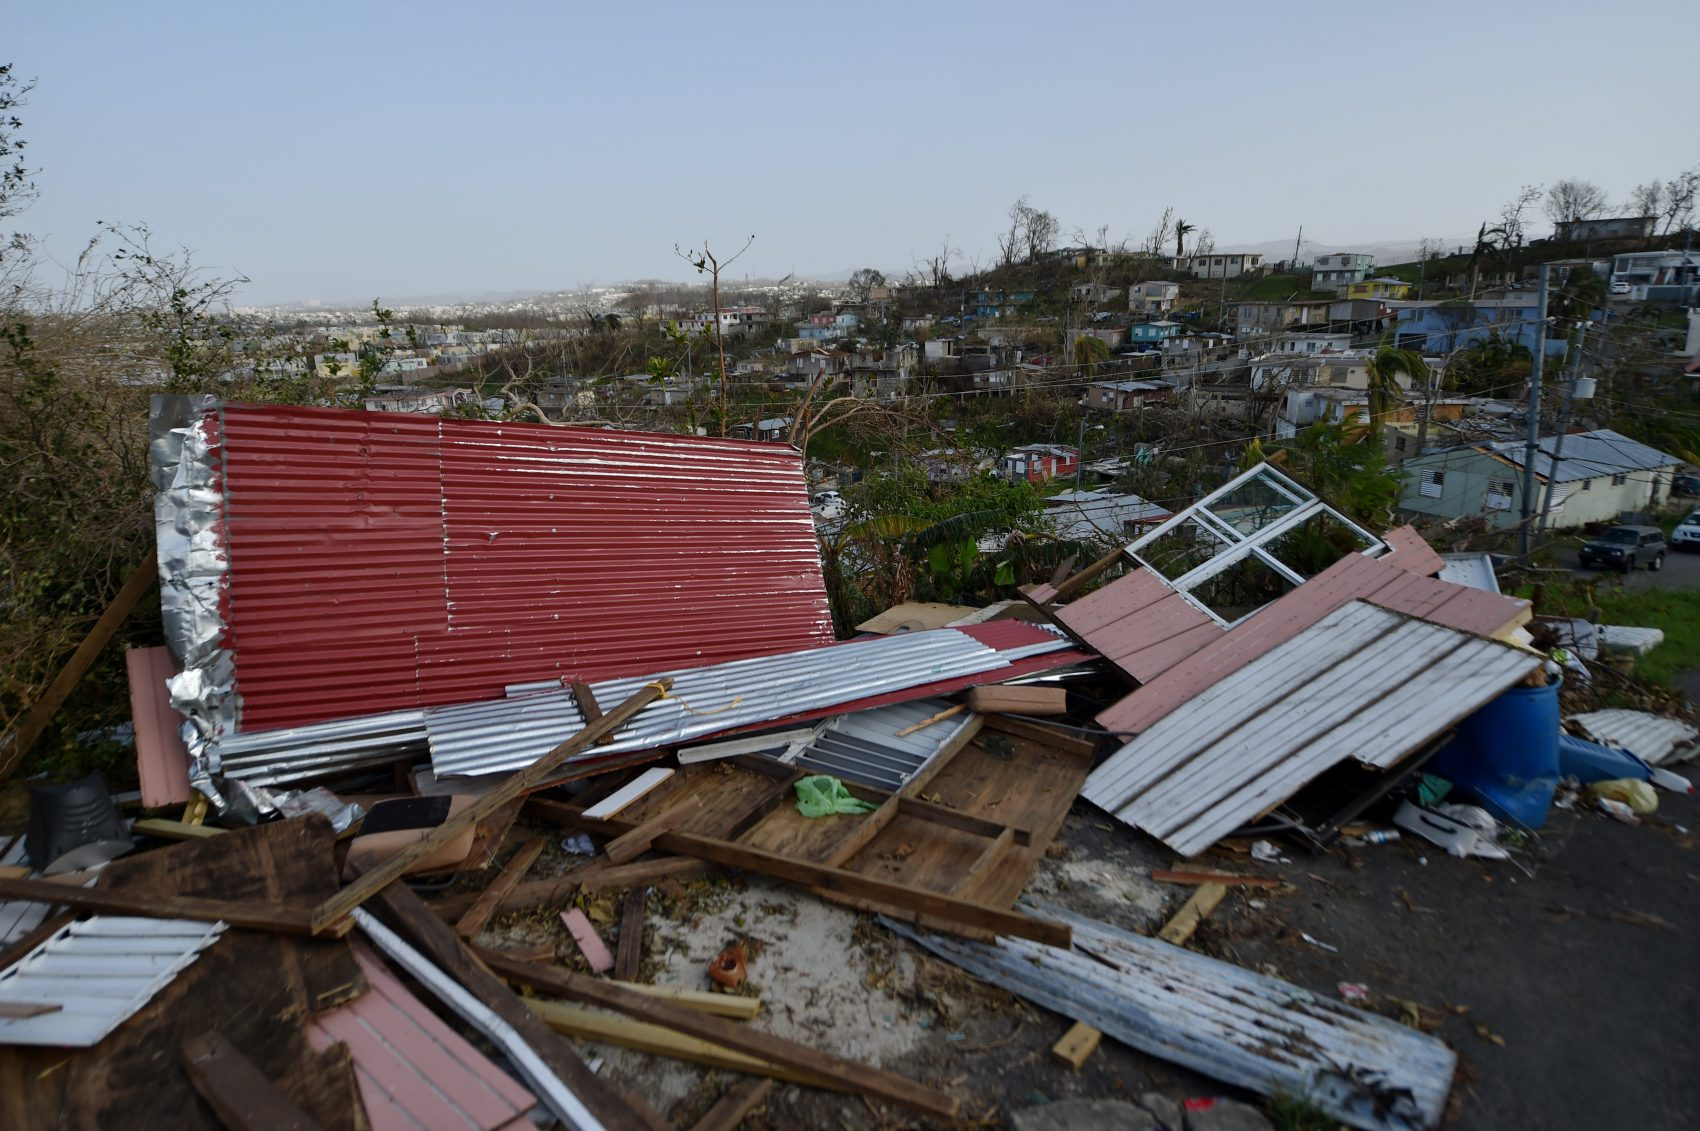 Destroyed homes are seen following the passage of Hurricane Maria in the neigborhood of Acerolas in Toa Alto, Puerto Rico, on Sept. 26, 2017. (Hector Retamal/AFP/Getty Images)